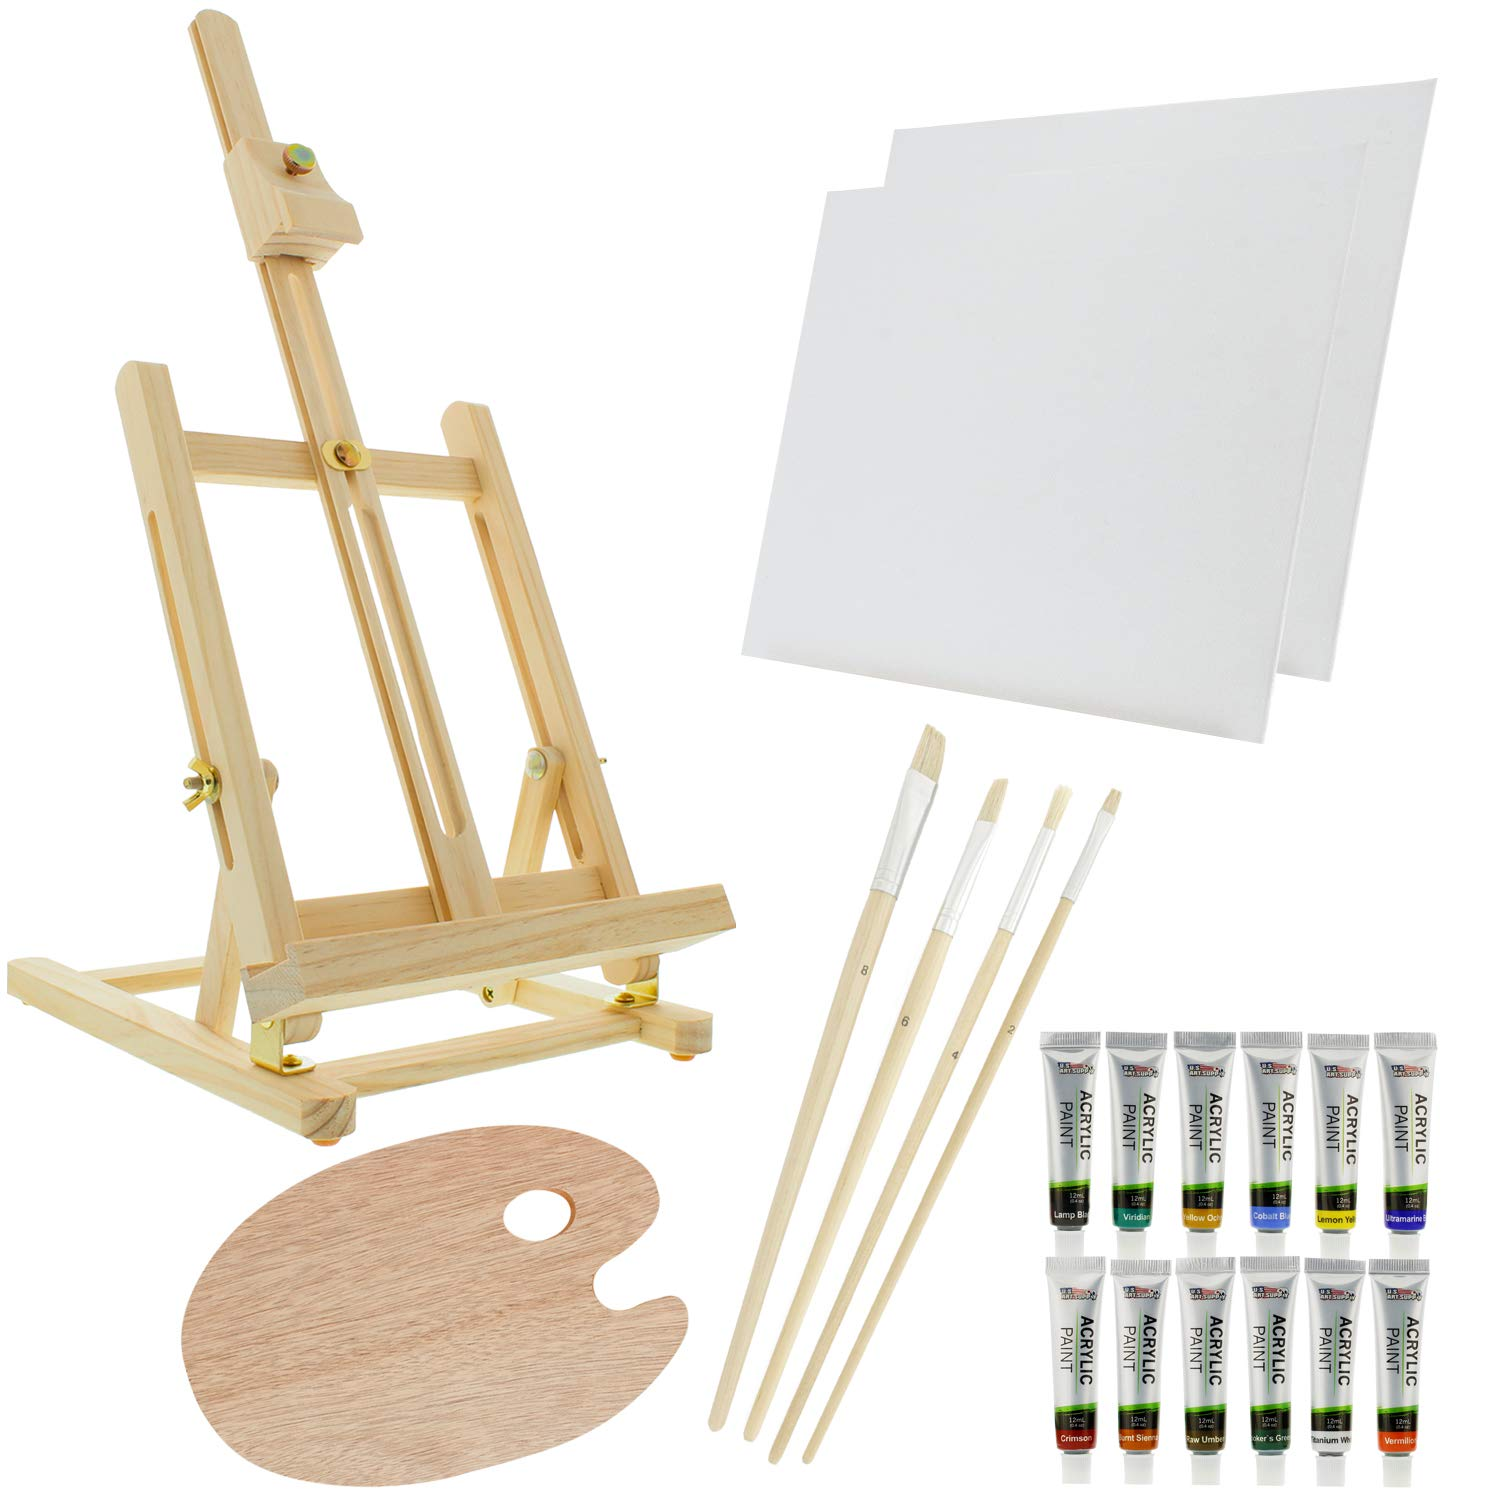 US Art Supply 21-Piece Wood Studio Table Easel & Paint Box Set with 12 Paint Colors, Canvas Panels, Brushes, Wood Palette (Acrylic Paint Kit) by US Art Supply